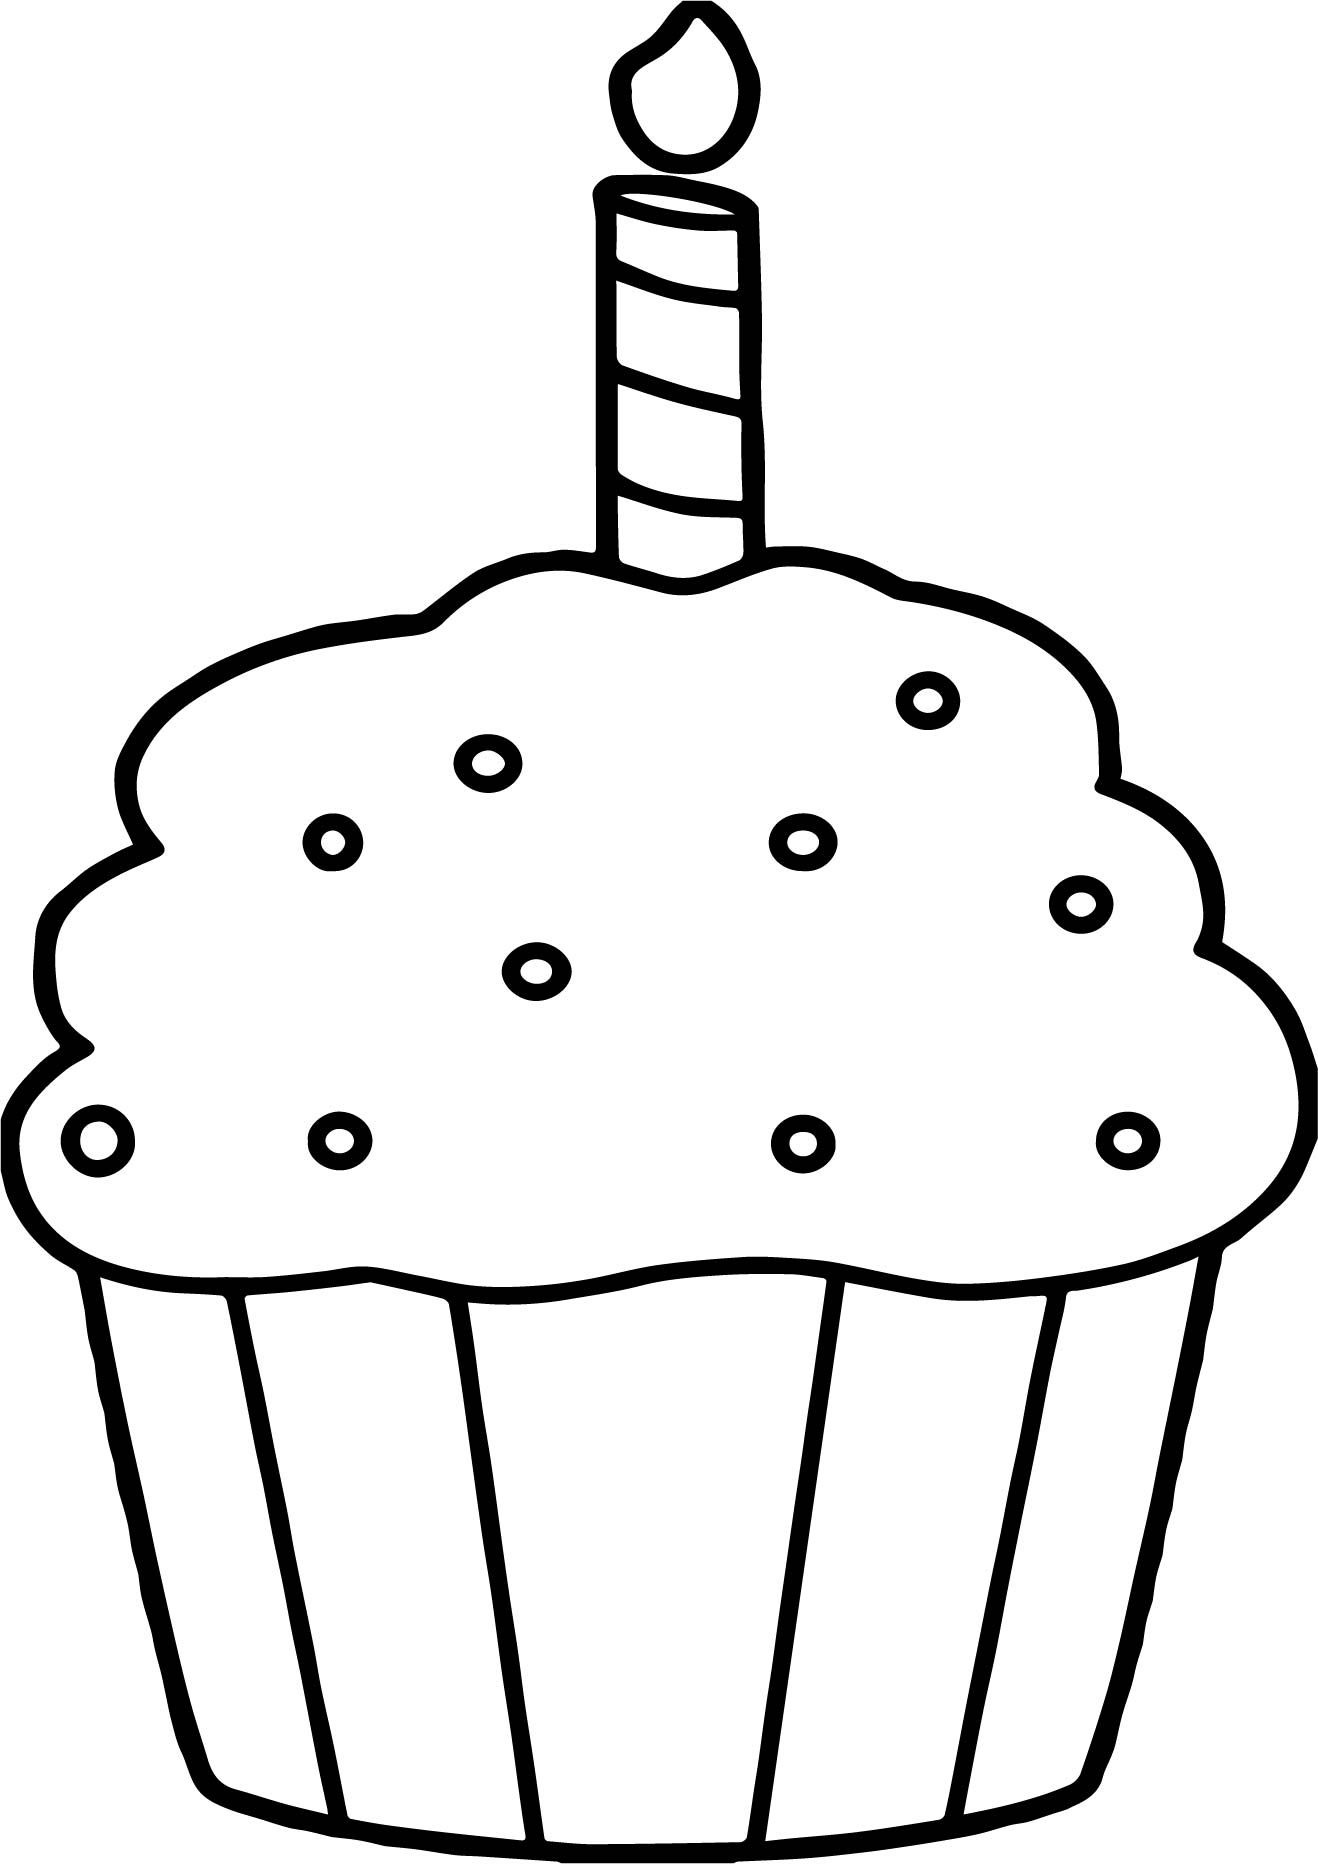 easy cupcake coloring pages free printable cupcake coloring pages for kids coloring pages cupcake easy